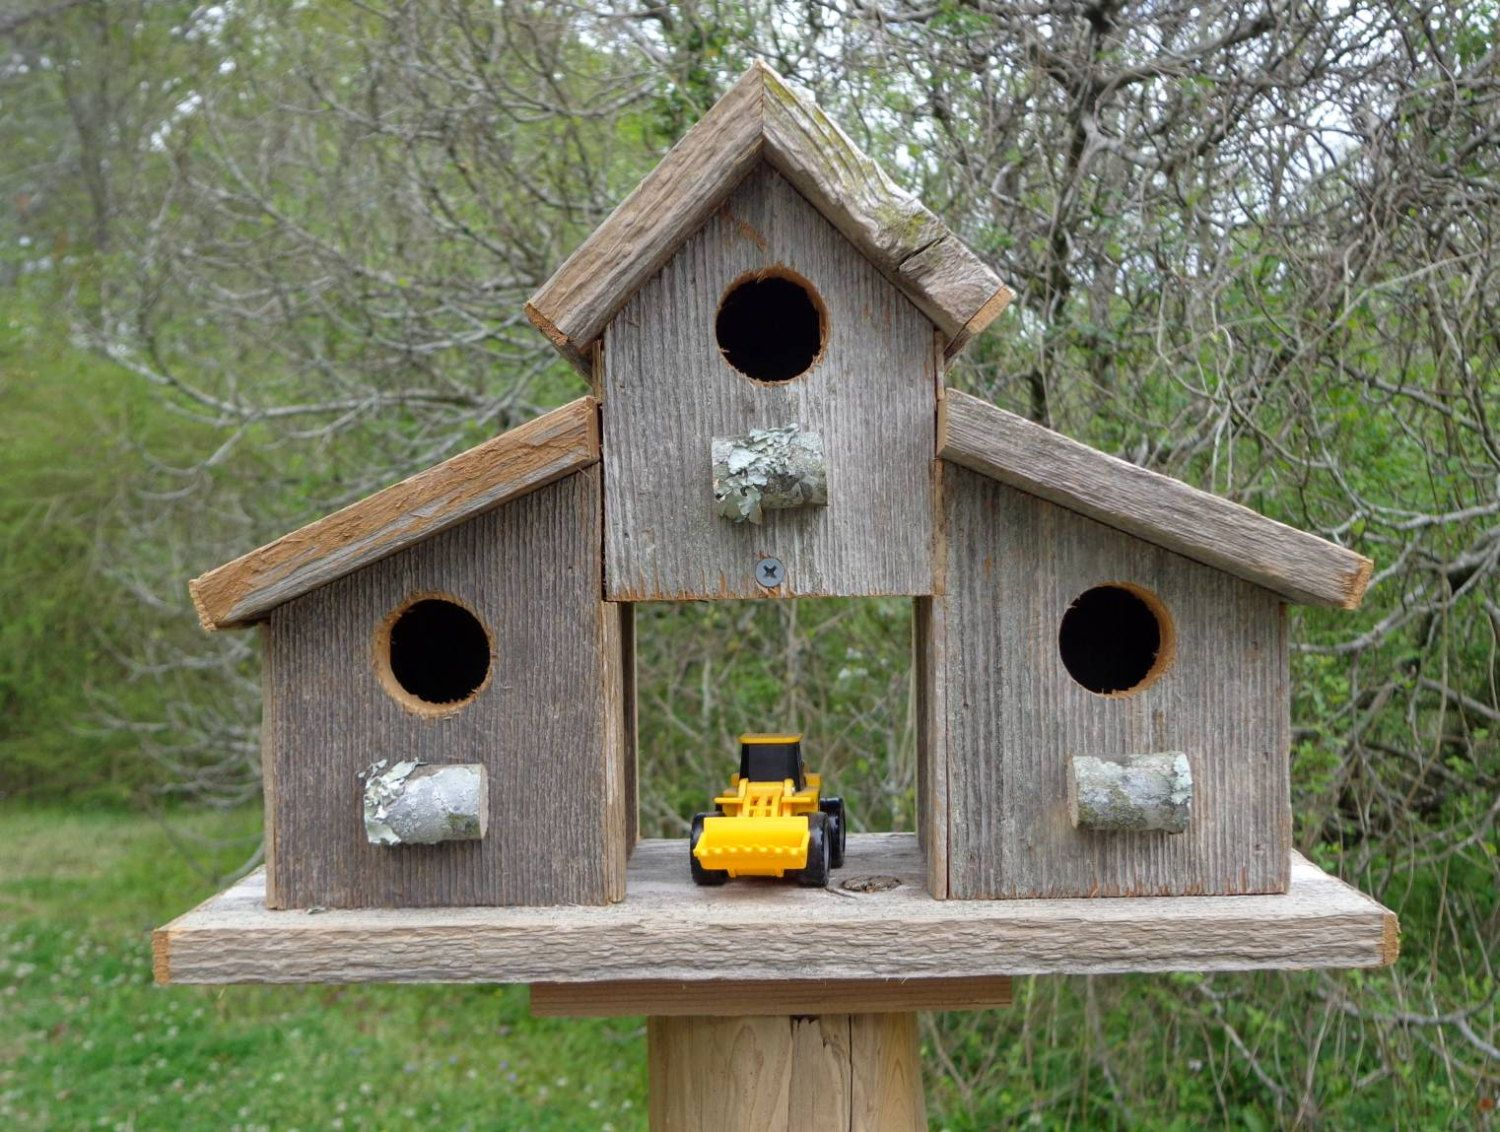 Rustic Reclaimed Cedar Birdhouse Barn | Bird house plans ...